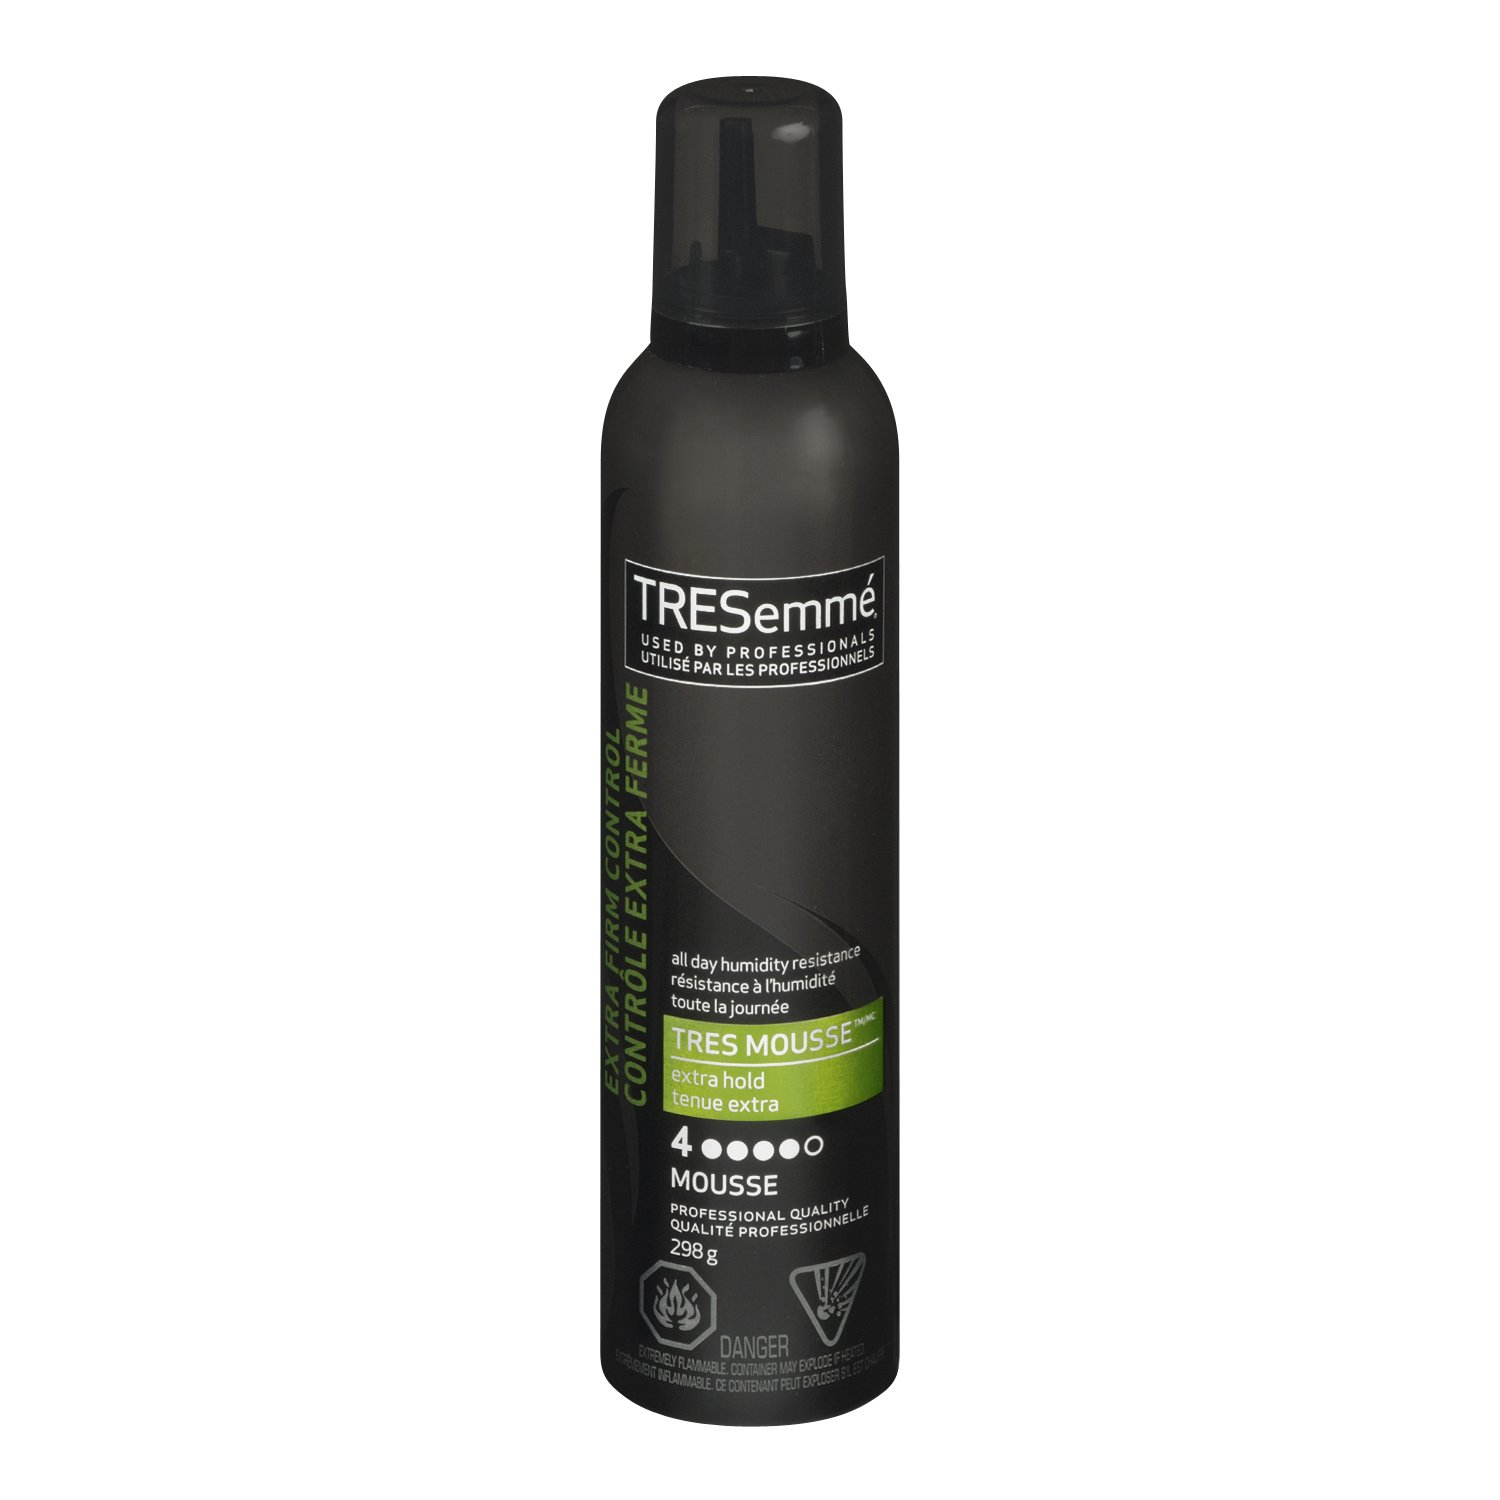 TRESemmé Extra Firm Control Extra Hold Mousse 298g Tresemme